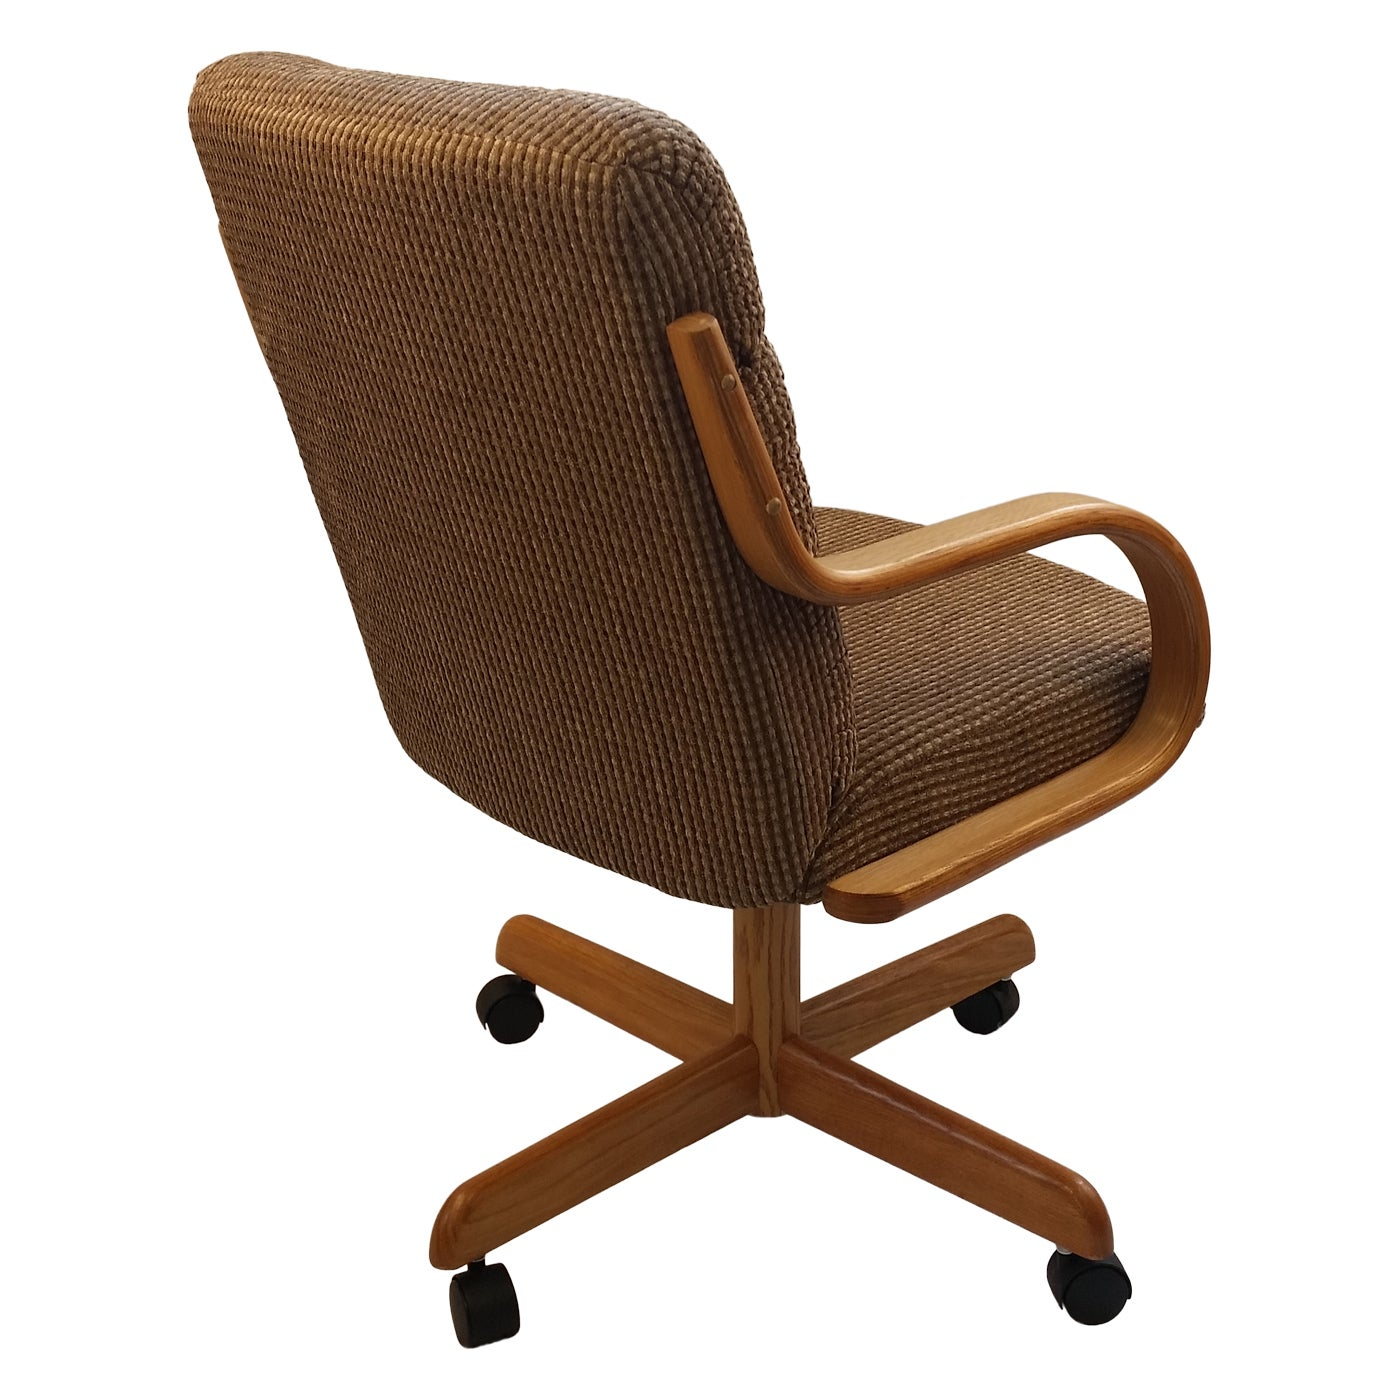 Shop Caster Chair Company C118 Arlington Swivel Tilt Caster Arm Chair  Caramel Tweed Fabric   Free Shipping Today   Overstock.com   14818849